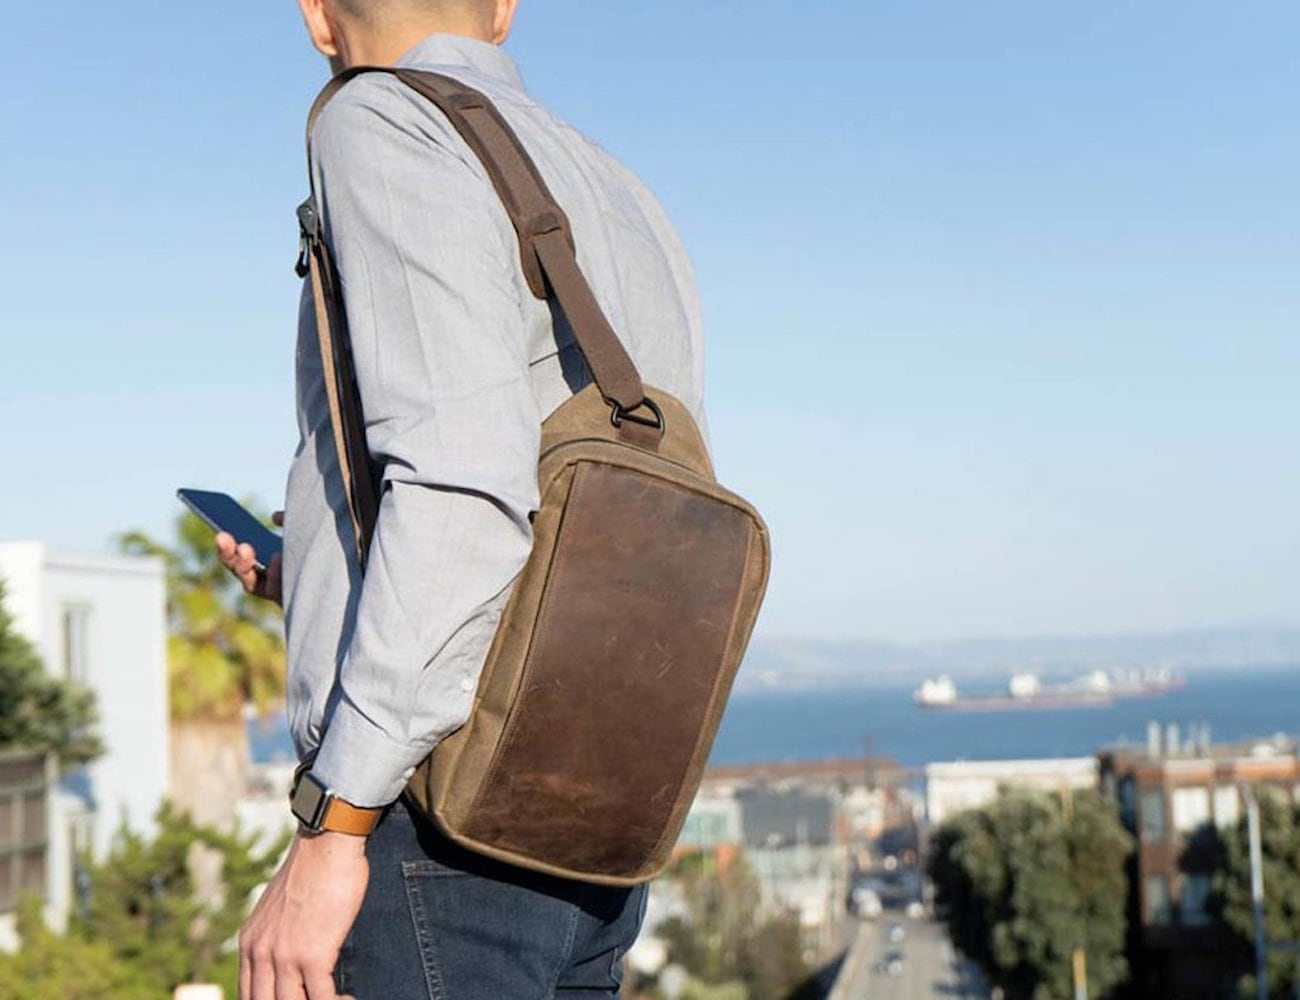 WaterField Designs Sutter Tech Sling Minimalist Everyday Bag perfectly fits your iPad Pro